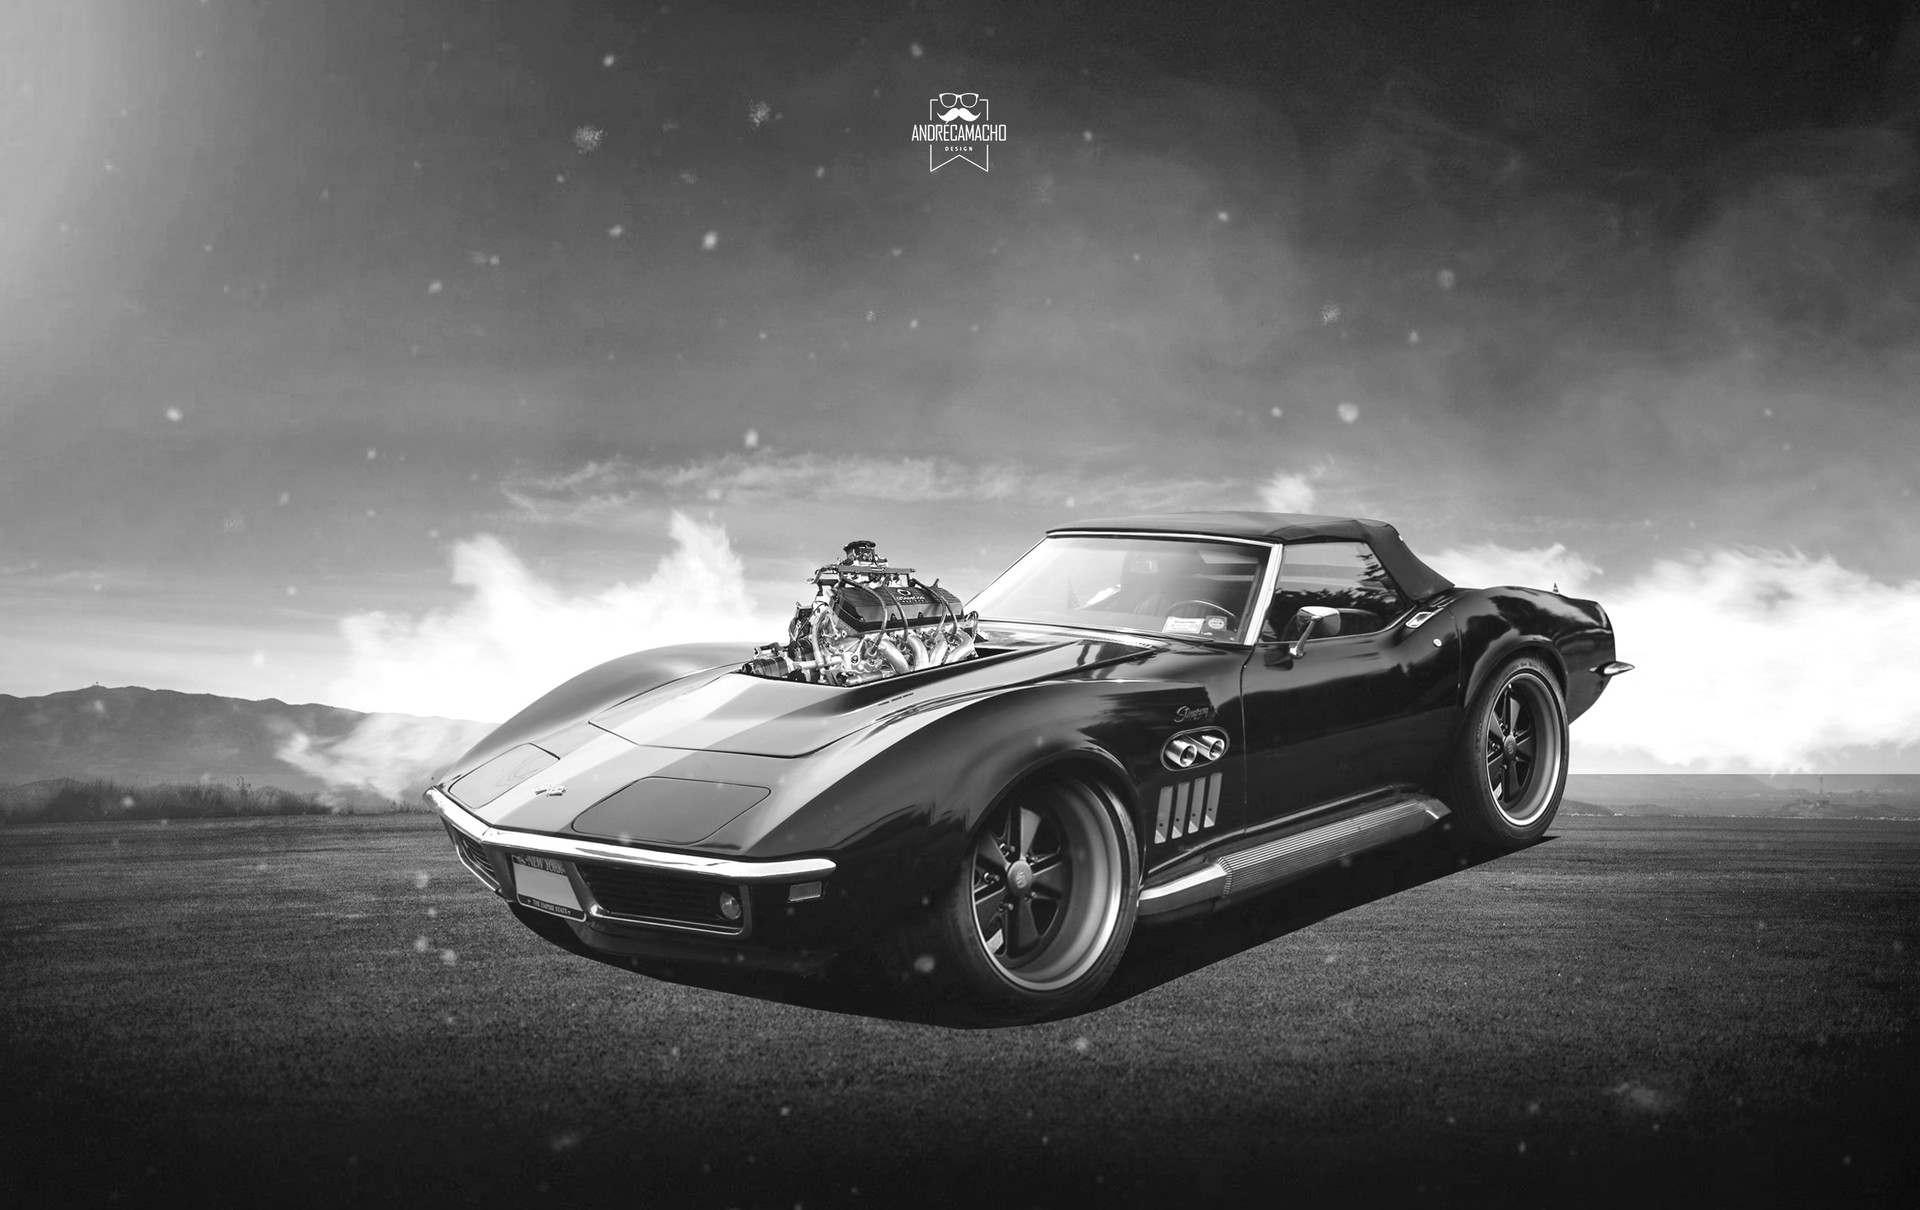 Andre camacho design chevrolet corvette stingray 1969ryuruw345